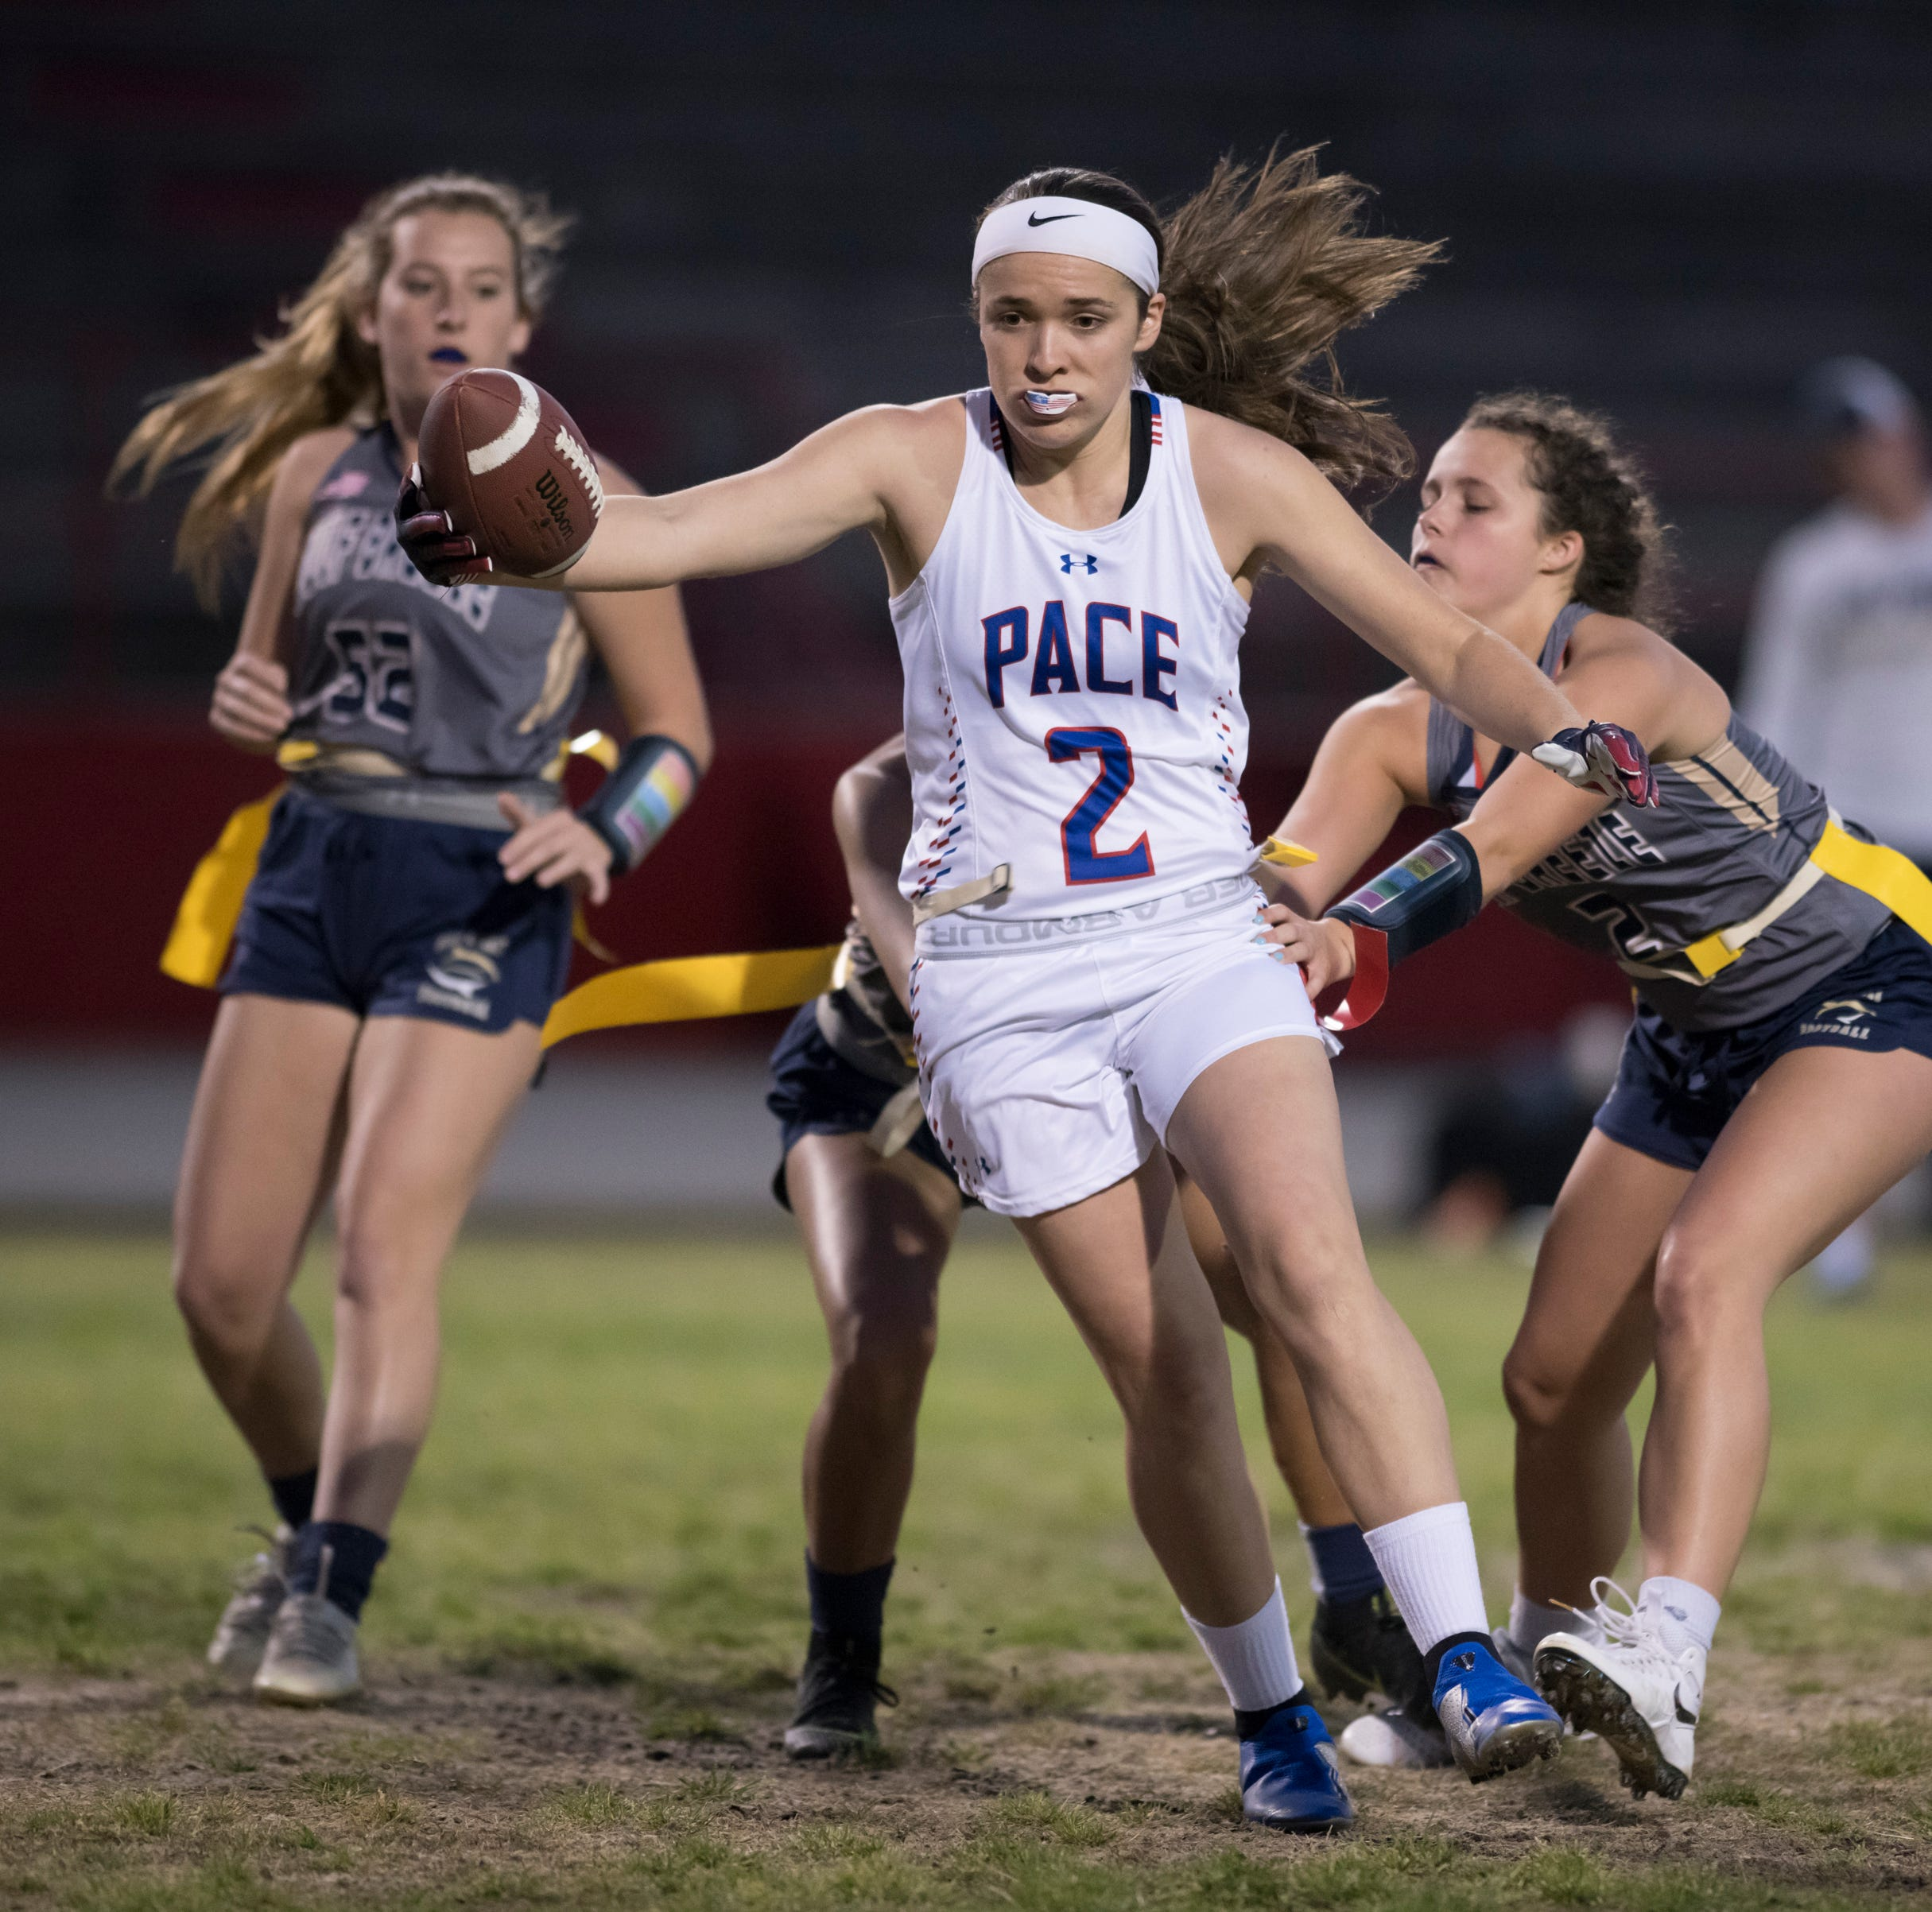 Pensacola-area flag football Year 2: Tradition on the rise with Pine Forest, Pace shining